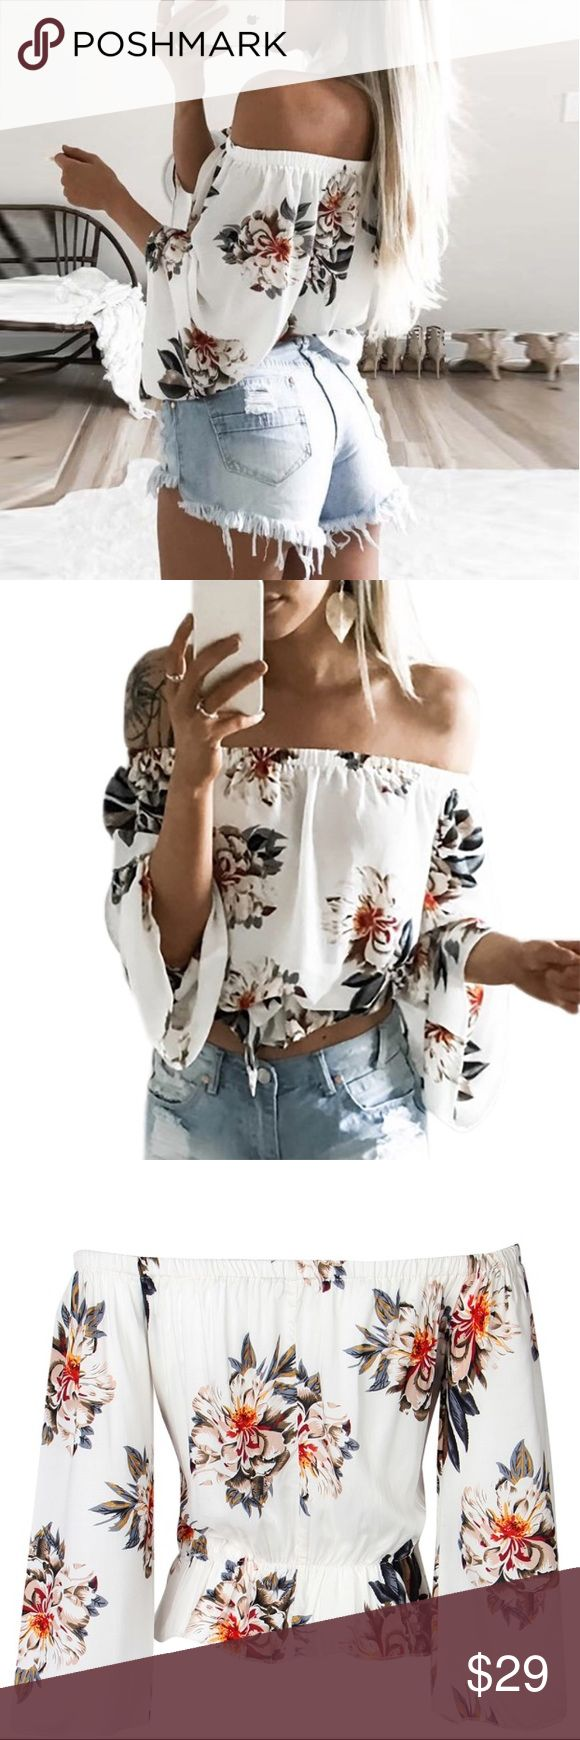 Floral Boho Off the Shoulder Top NWT in original packaging. Cotton/polyester blend material. Crop top. Runs one size smaller than tag size. Bell/batwing sleeve gives this piece a relaxed, casual feel.                                                                                   ✅ Offers encouraged  🛍 Bundle to receive 10%+ discount  💌 Same or Next business day shipping  ❌ No trades Tops Crop Tops